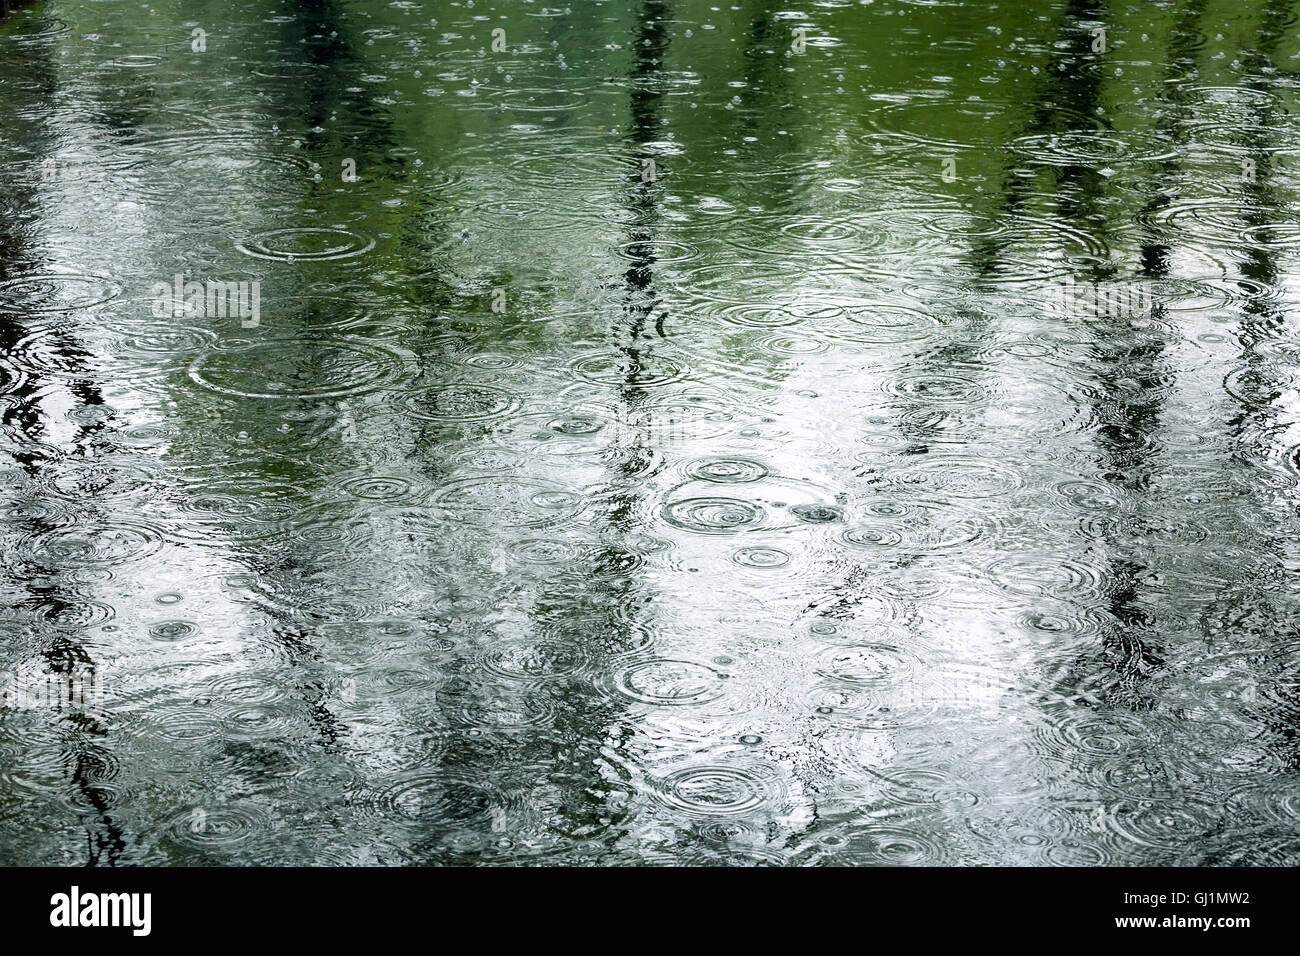 rain drops in a puddle with trees reflection - Stock Image